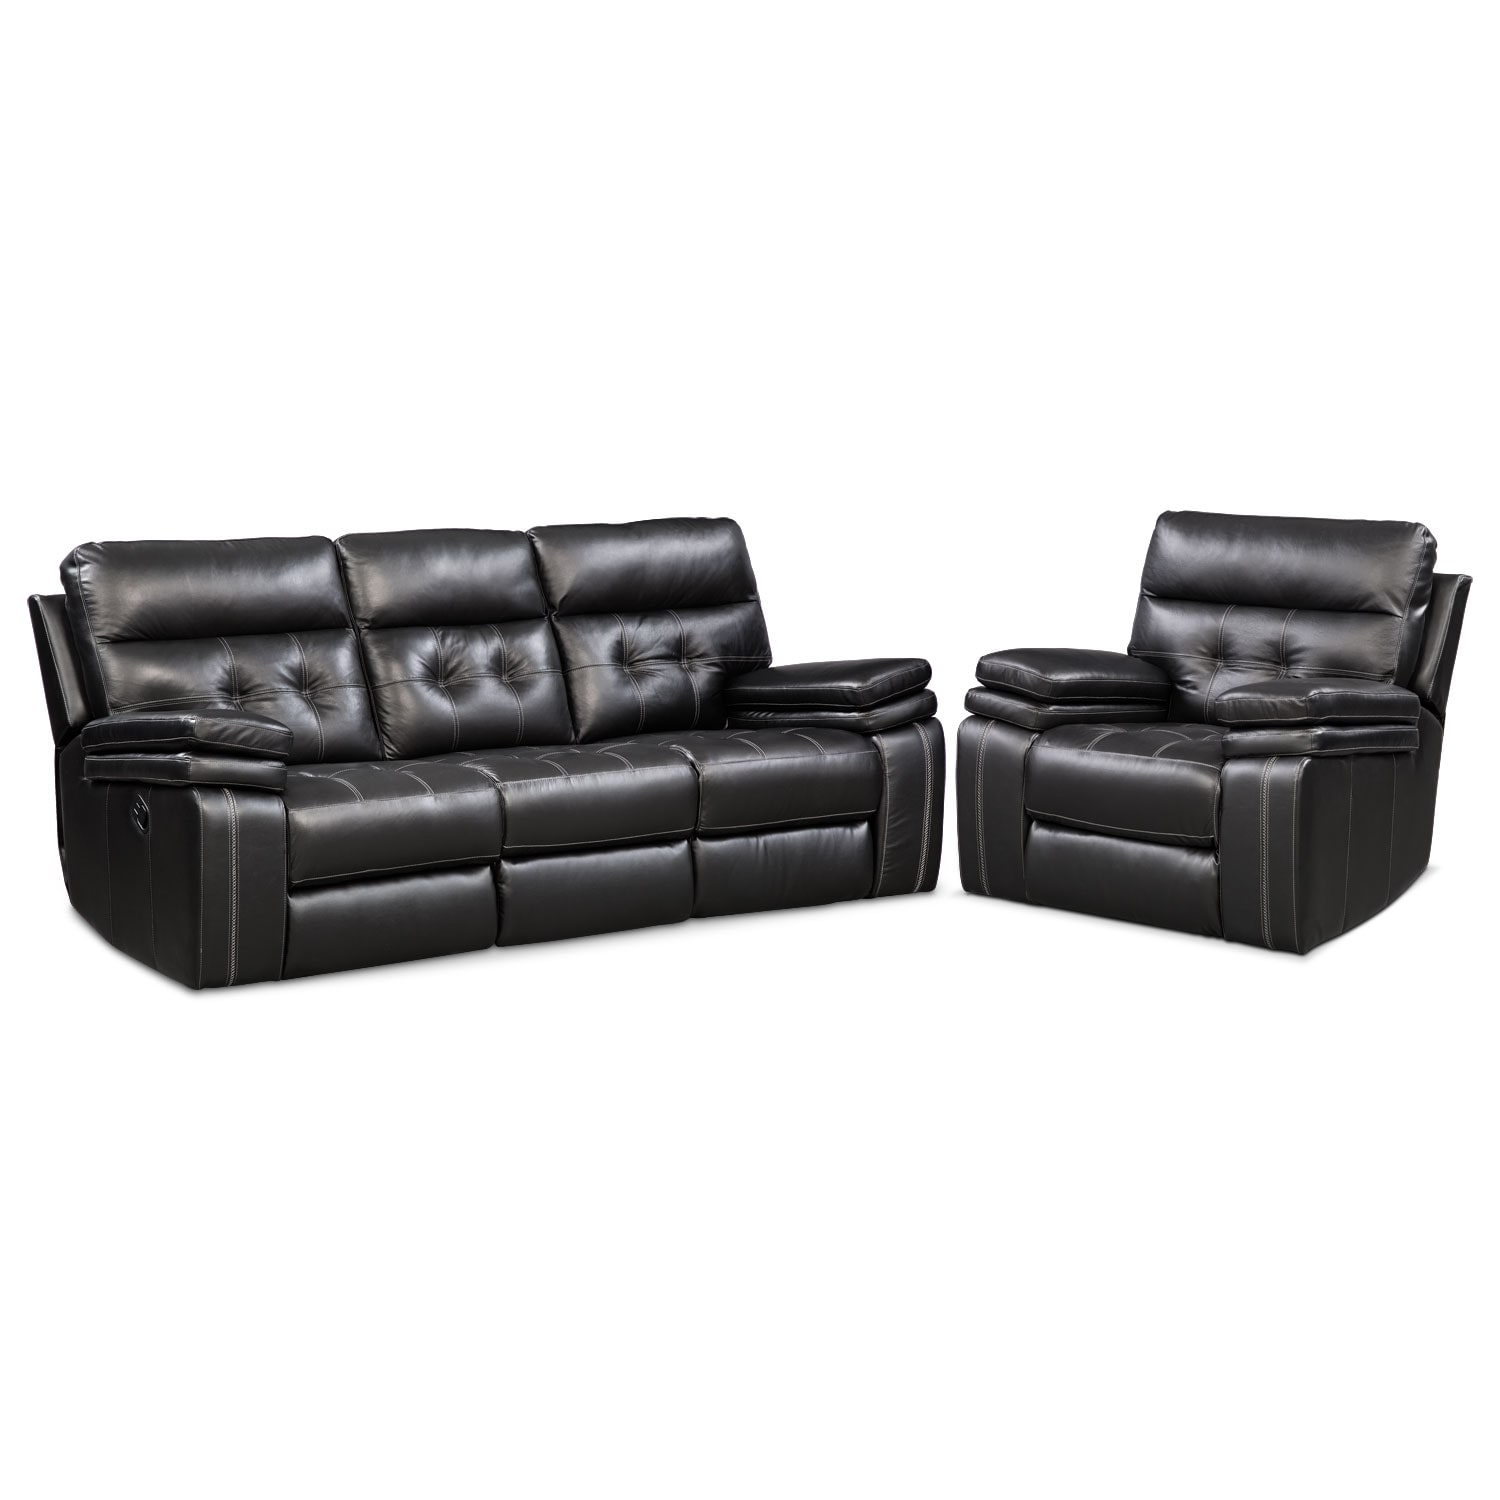 Brisco  Manual Reclining Sofa and Recliner Set - Black